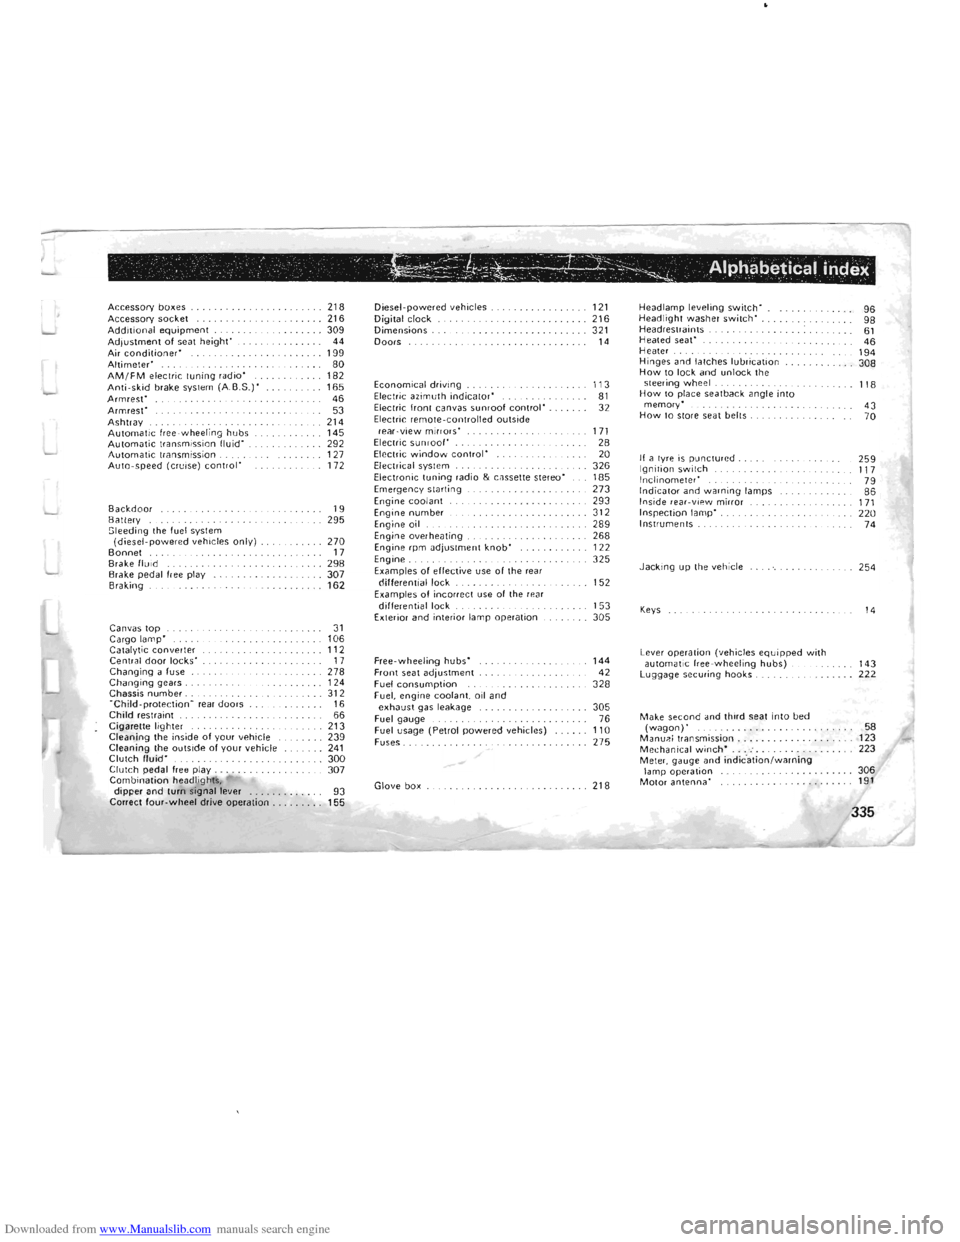 fuses MITSUBISHI PAJERO 1996 2.G Owners Manual (302 Pages)